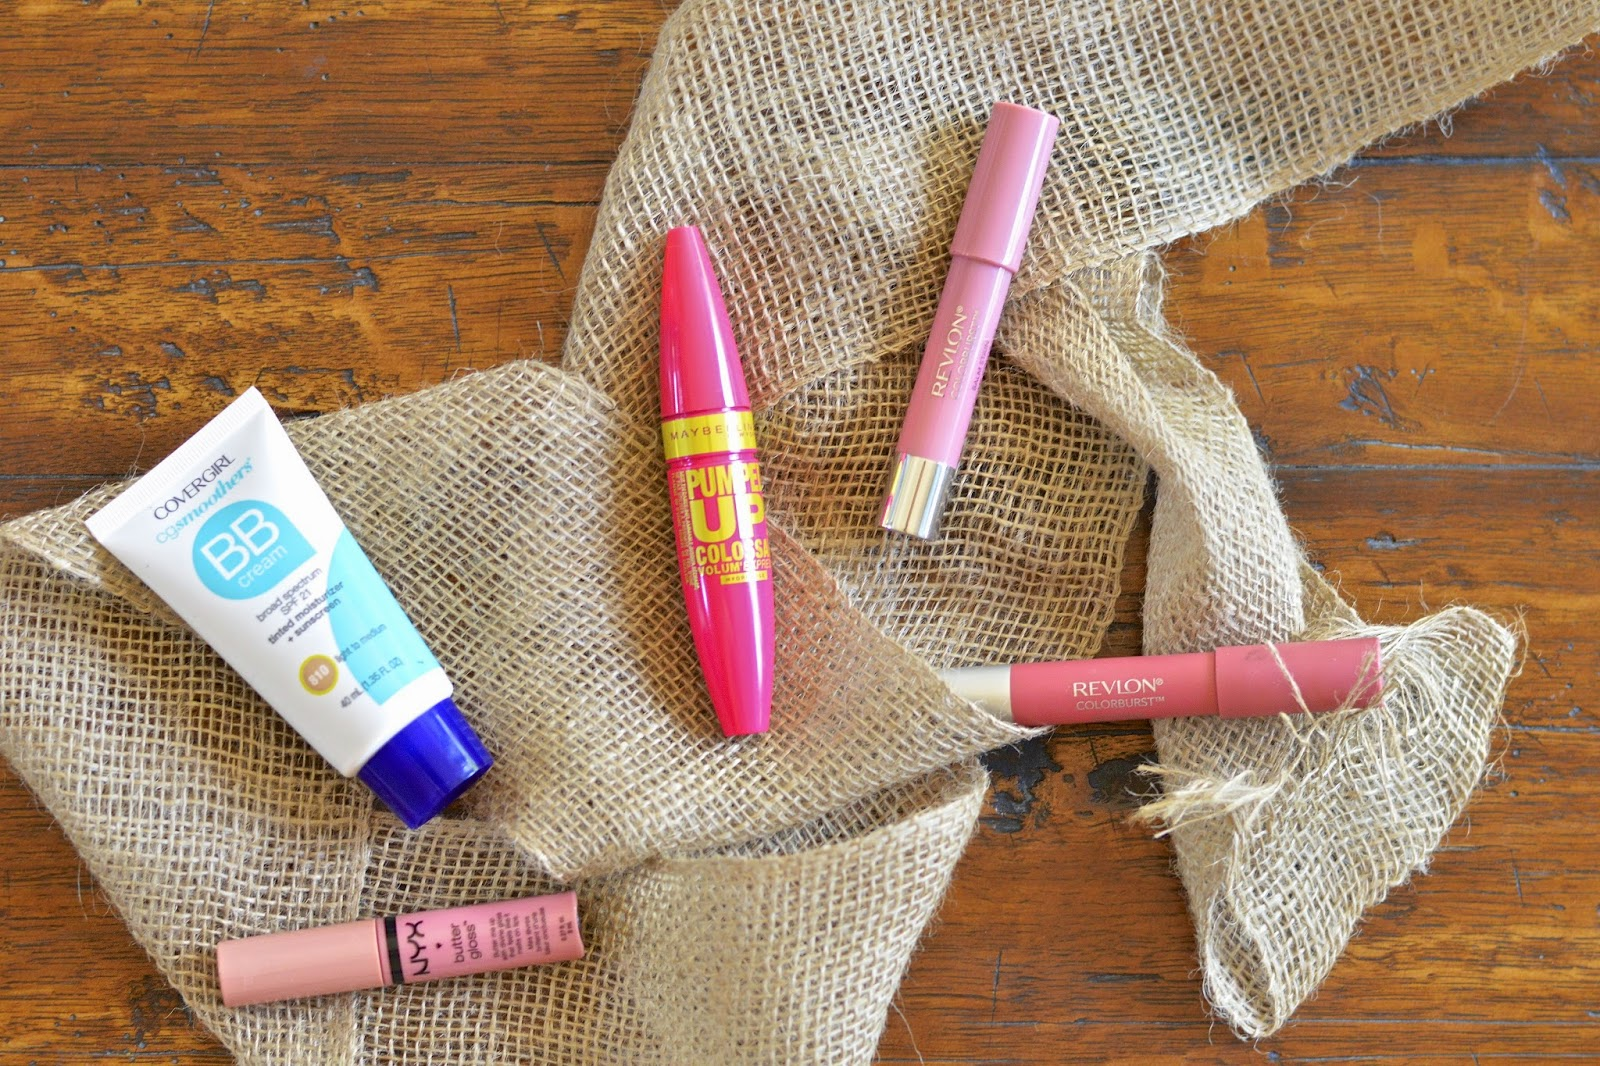 Covergirl CG Smoothers BB Cream, Volum' Express Pumped Up! Colossal Mascara, NYX Butter Gloss, Revlon Colorburst Balm Stain, Revlon Colorburst Matte Balm